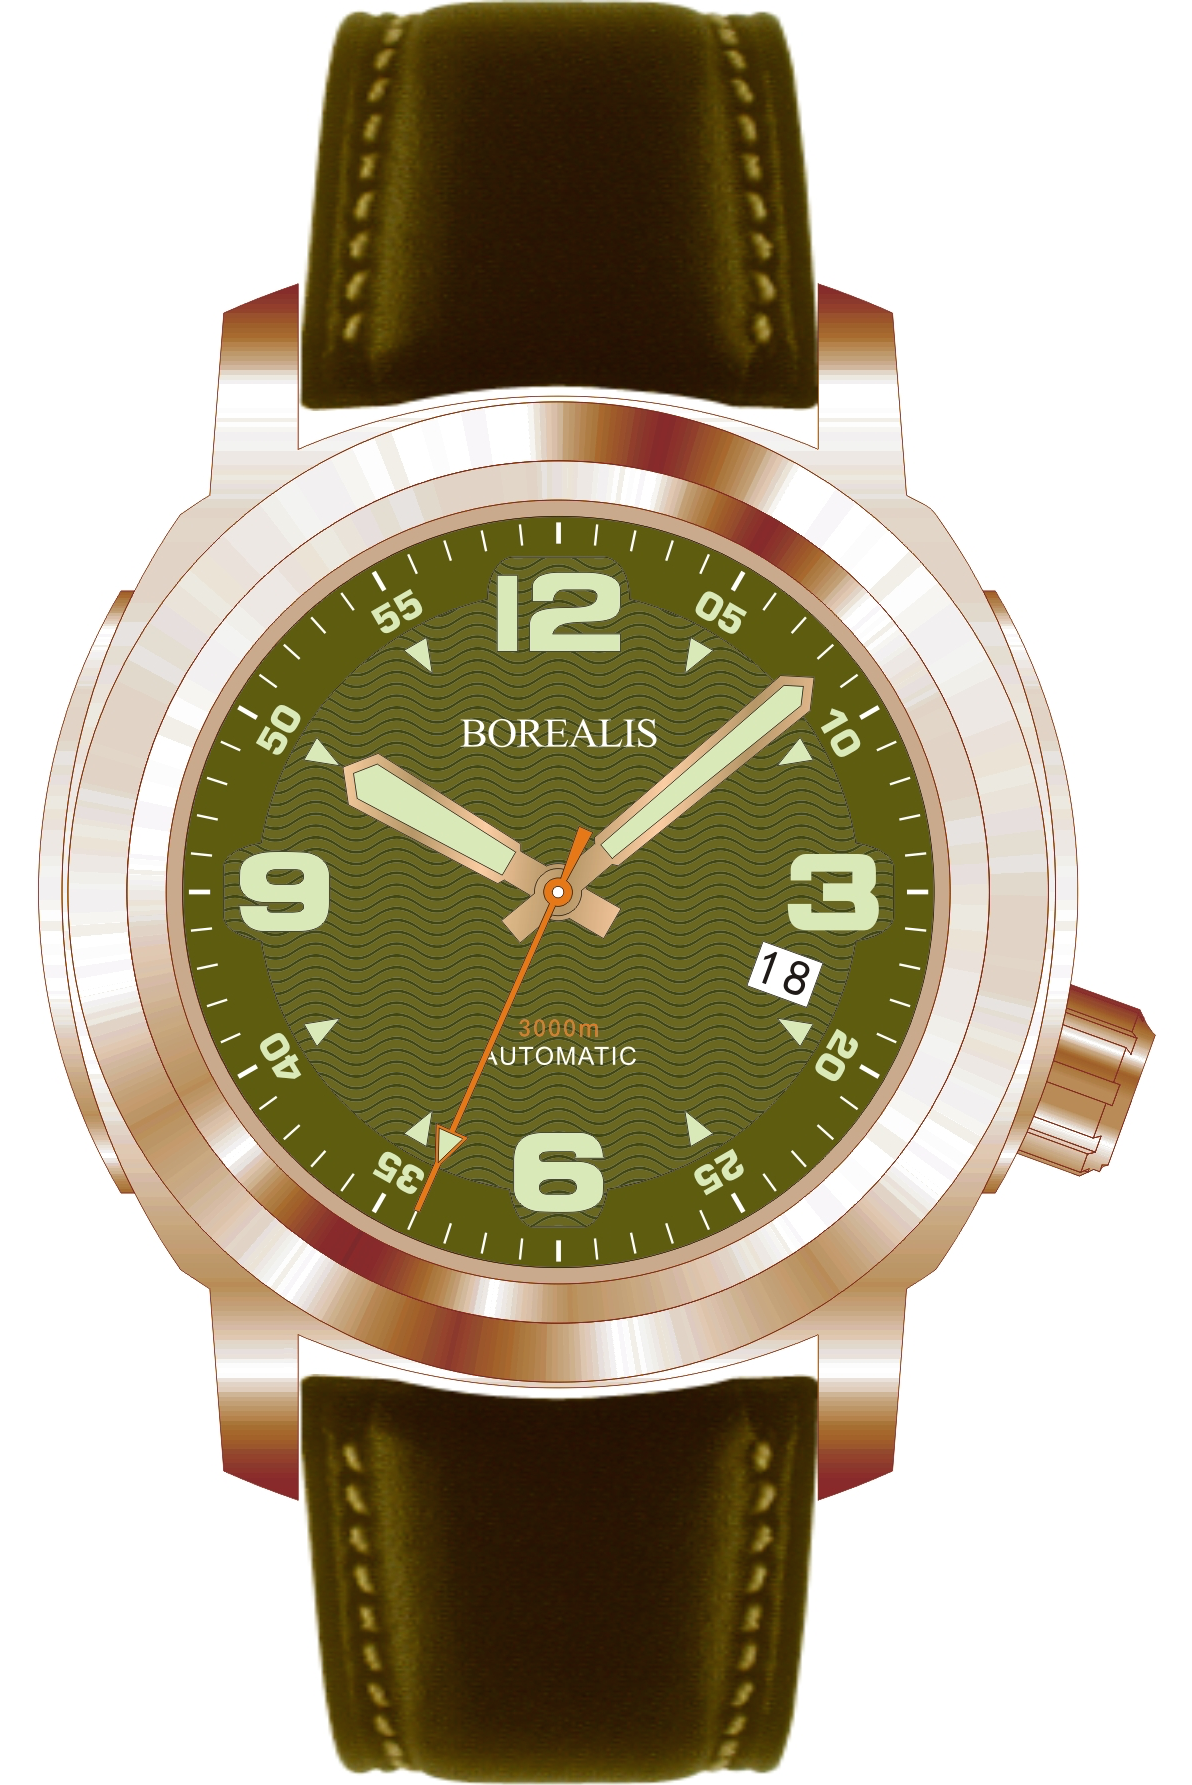 Borealis Batial Bronze CuSn8 Green 3000m Miyota 9015 Automatic Diver Watch With Date Display BBCUSN8GREENDATE